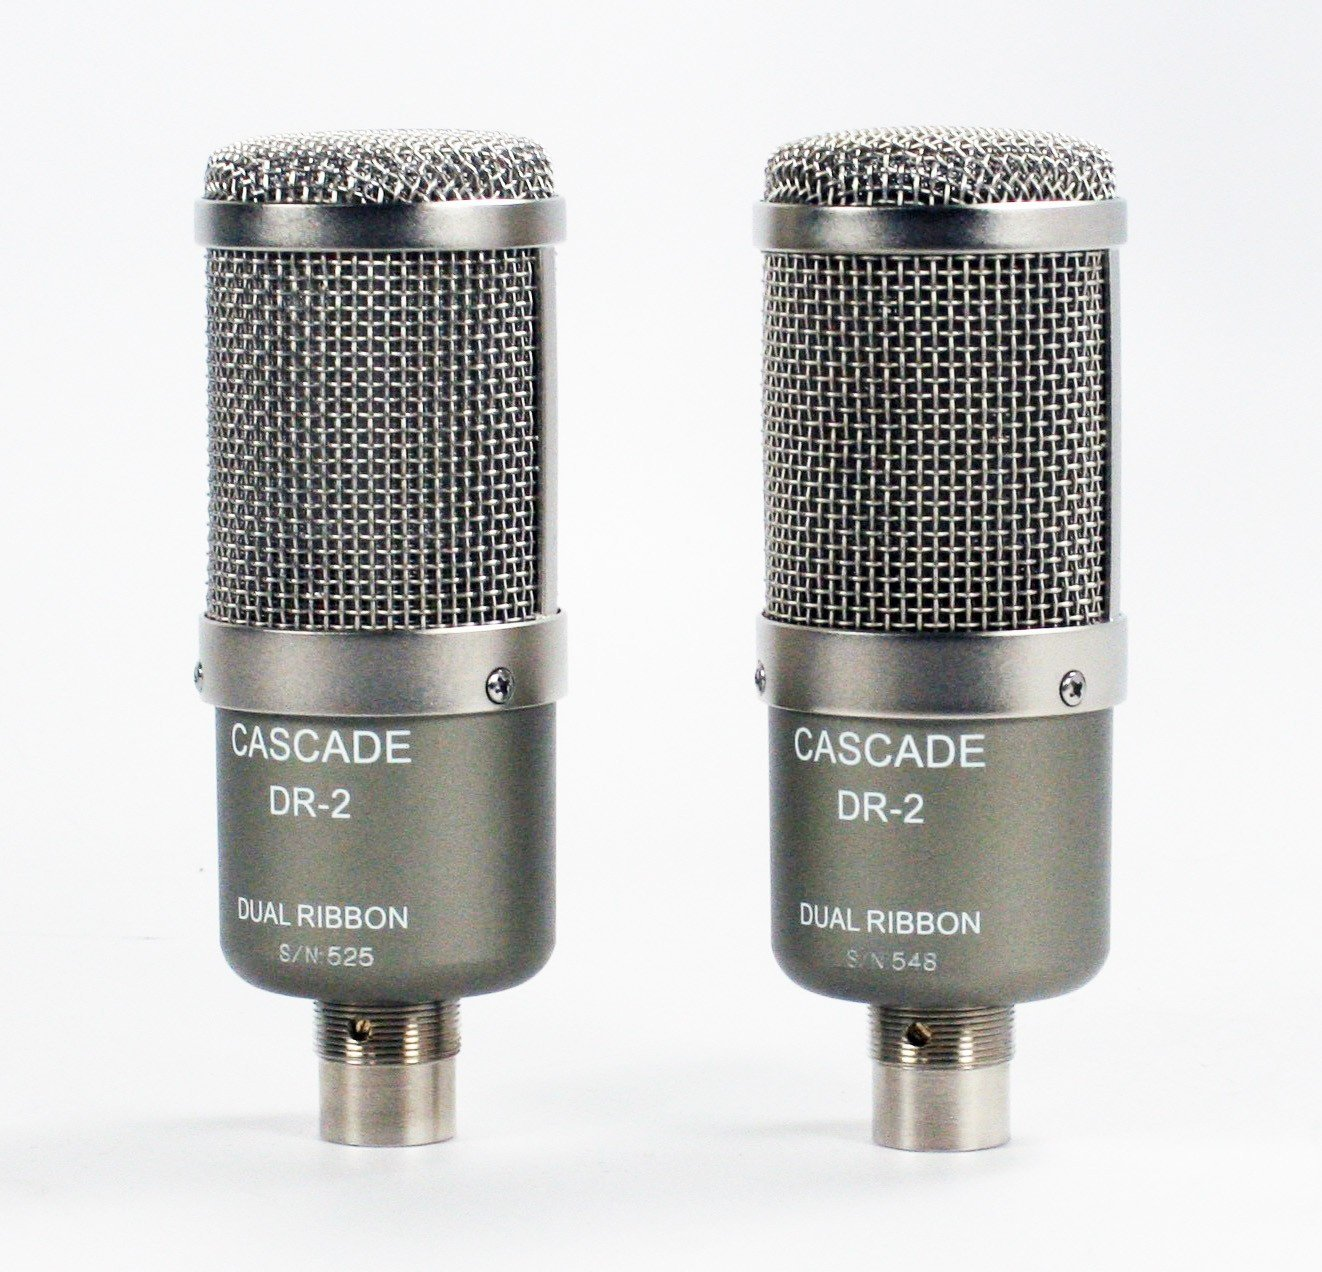 Cascade Microphones DR-2 Dual Ribbon Stereo Pair - Grey Body/Anodized Silver Grill,